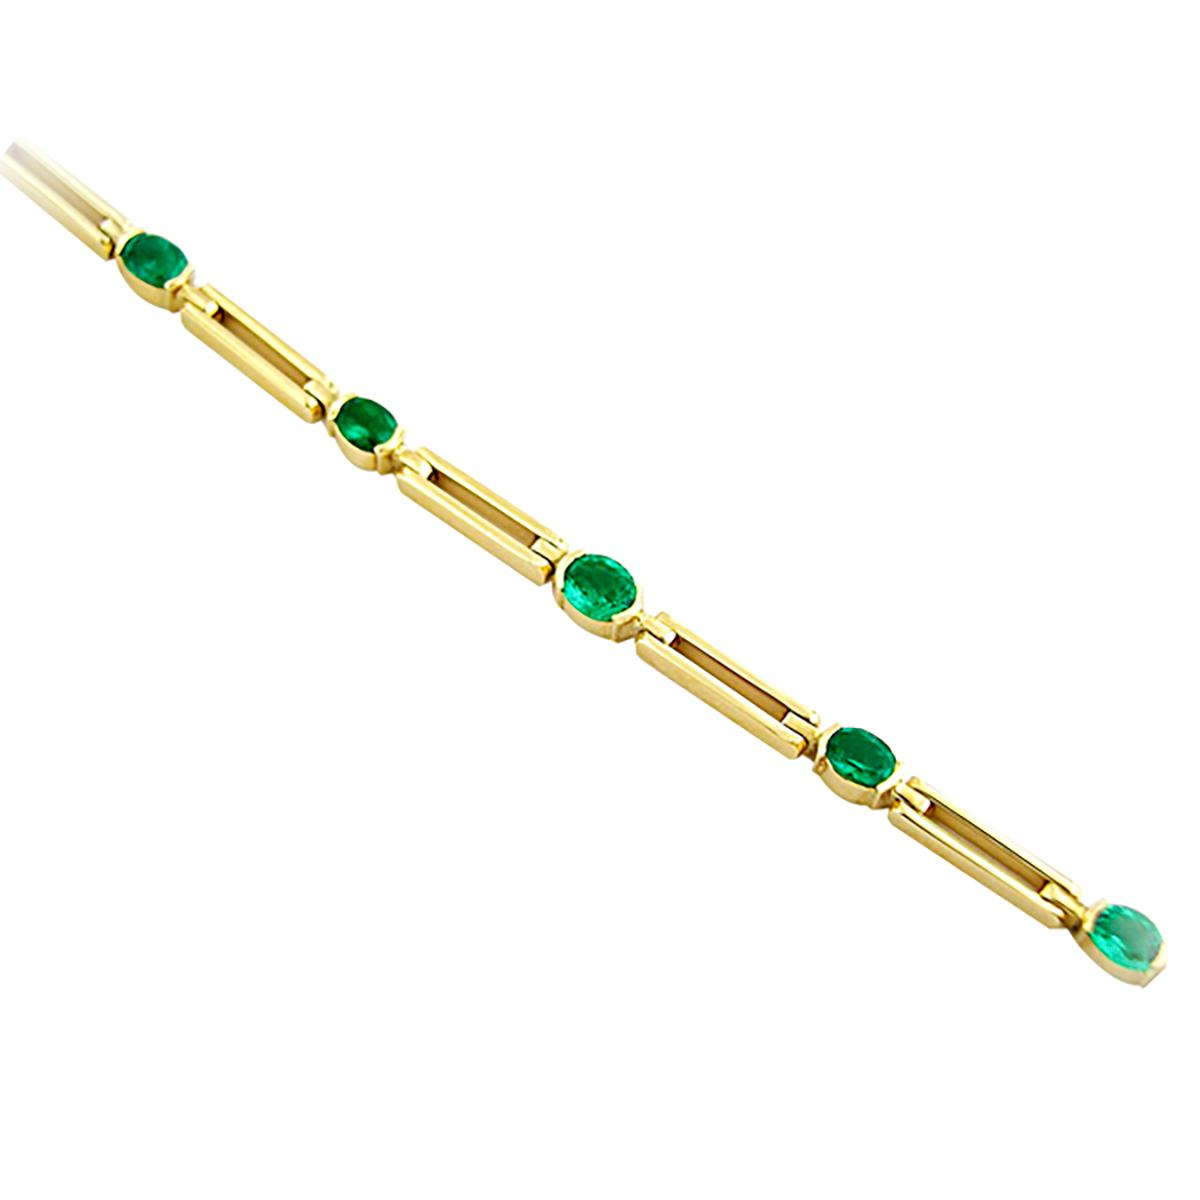 emerald-bracelet-in-18k-yellow-gold-with-9-oval-shape-natural-emeralds